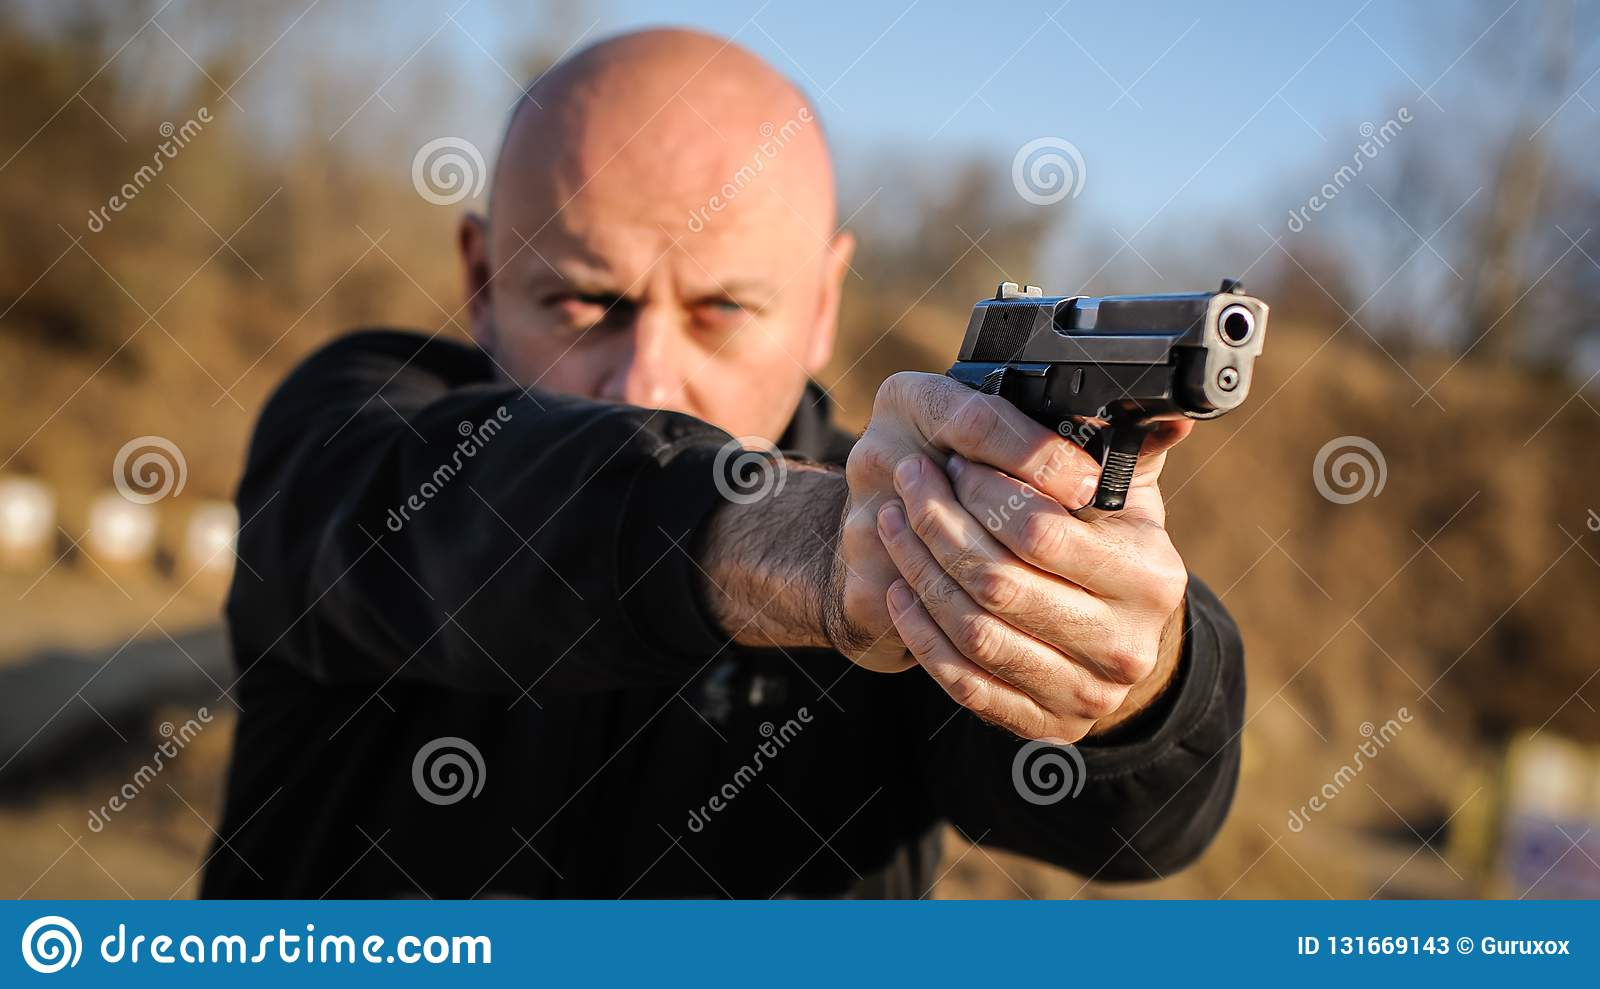 Police agent and bodyguard pointing pistol to protect from attacker